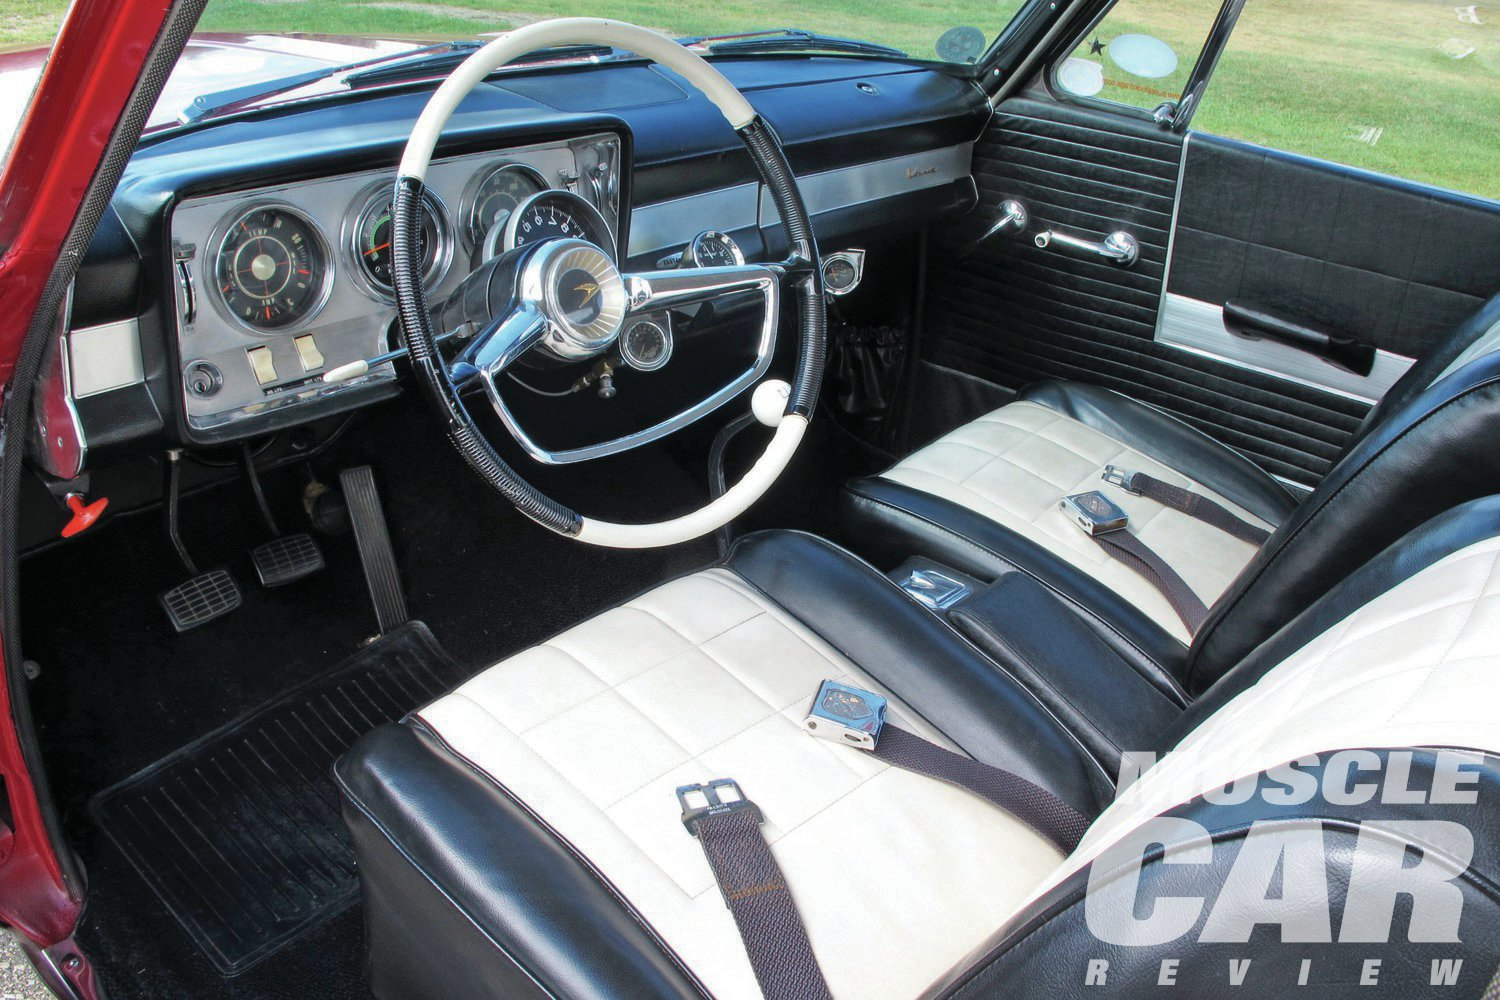 As part of the Custom trim, the Lark's interior is well appointed. Two-tone seats and matching steering wheel add style.